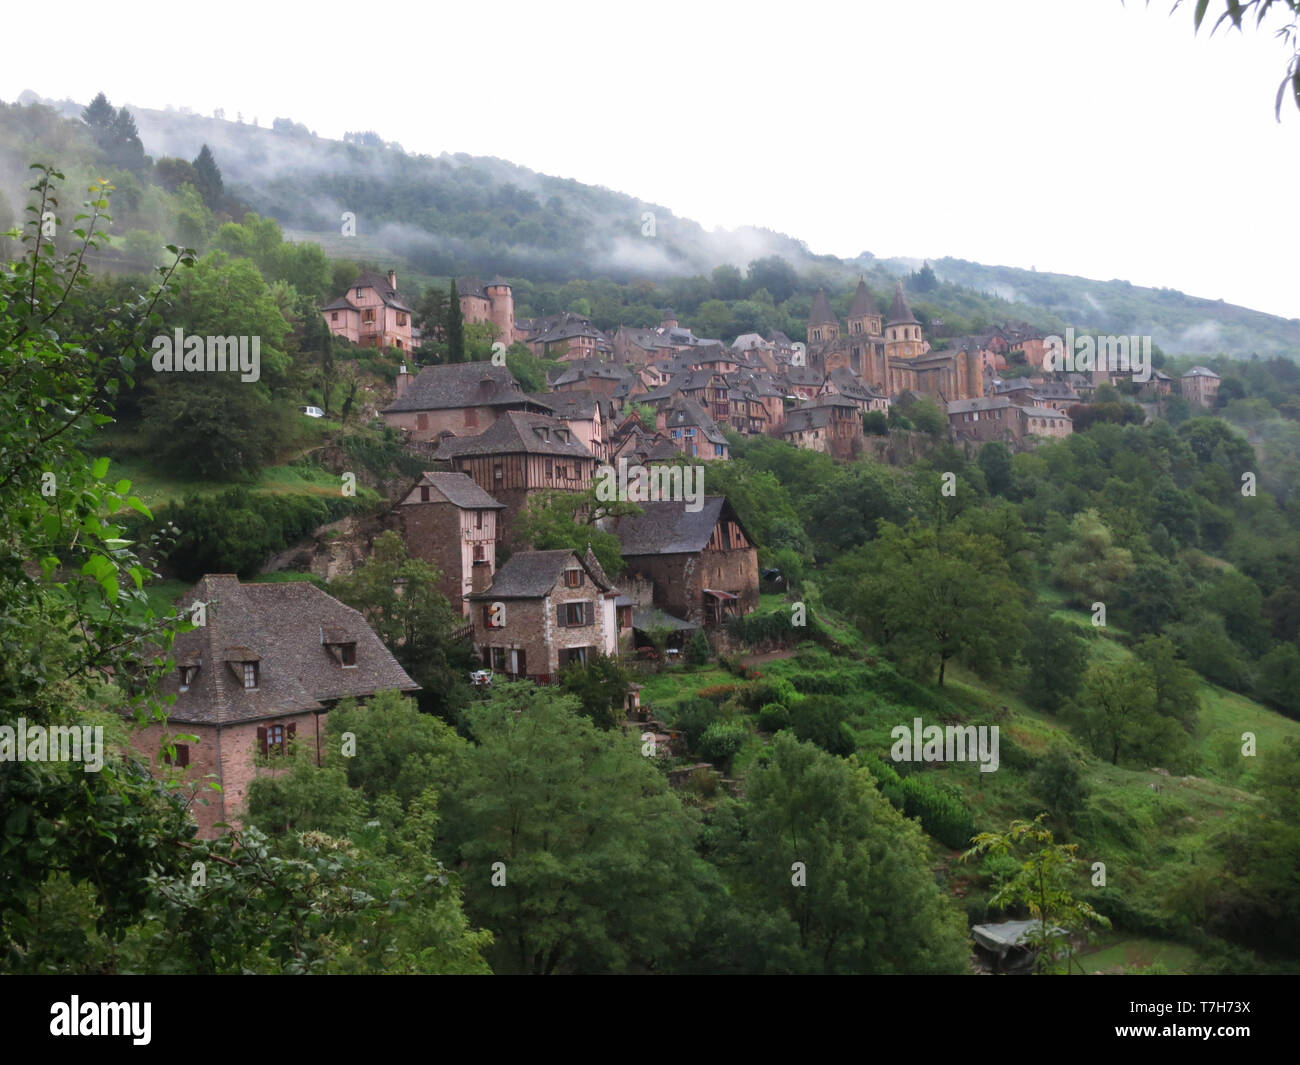 Conques, historic town along the Via Podiensis, also know as Le Puy Route, in southern France. - Stock Image